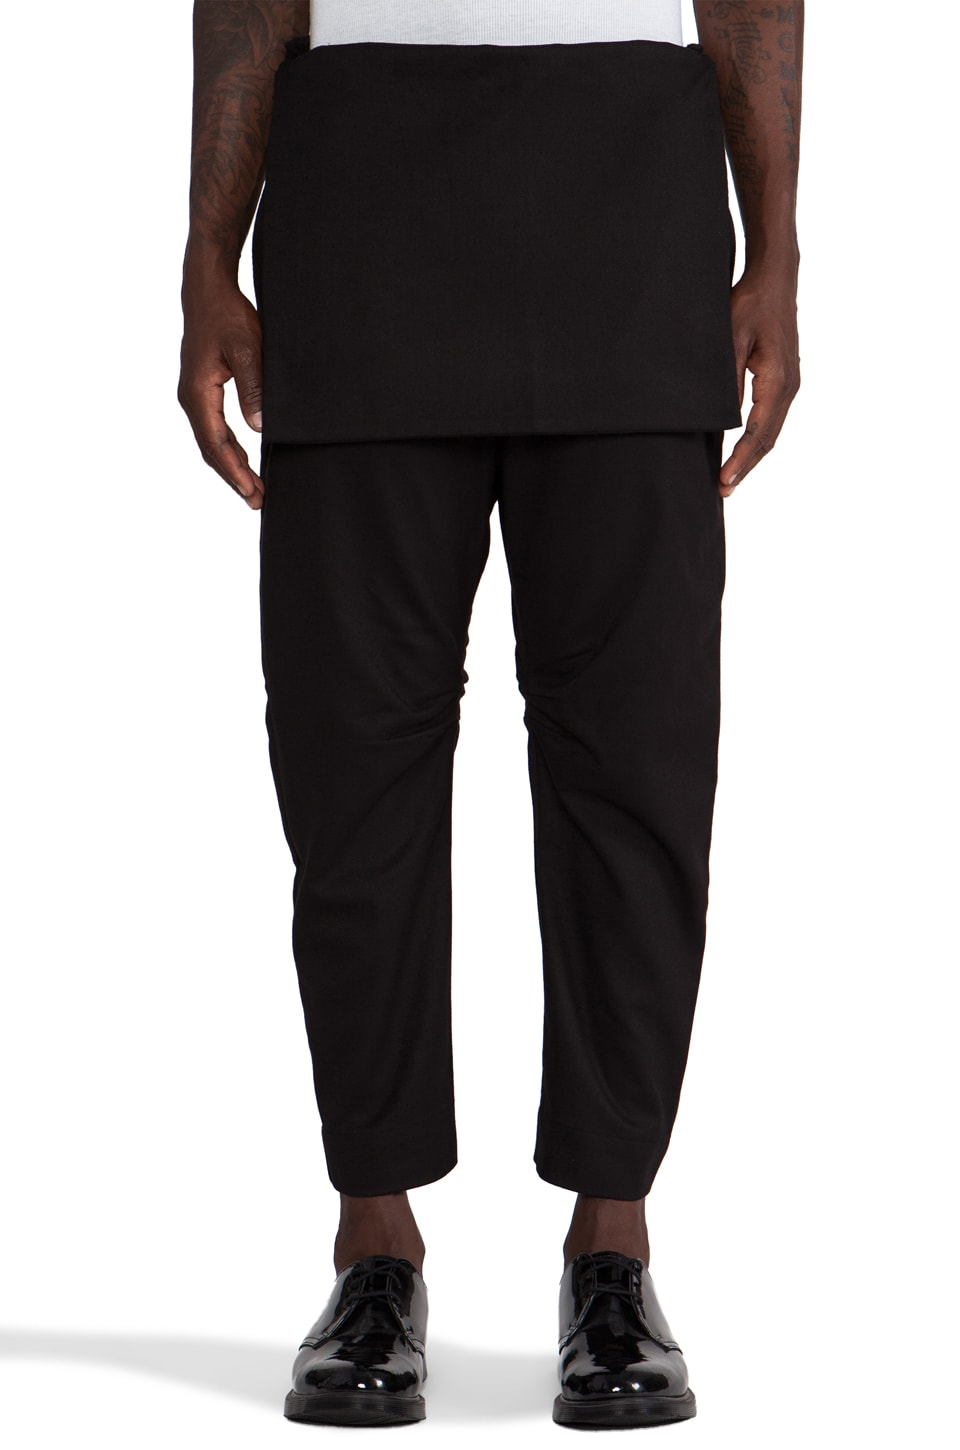 CHAPTER Shando Front Panel Pant in Black Dress Wool